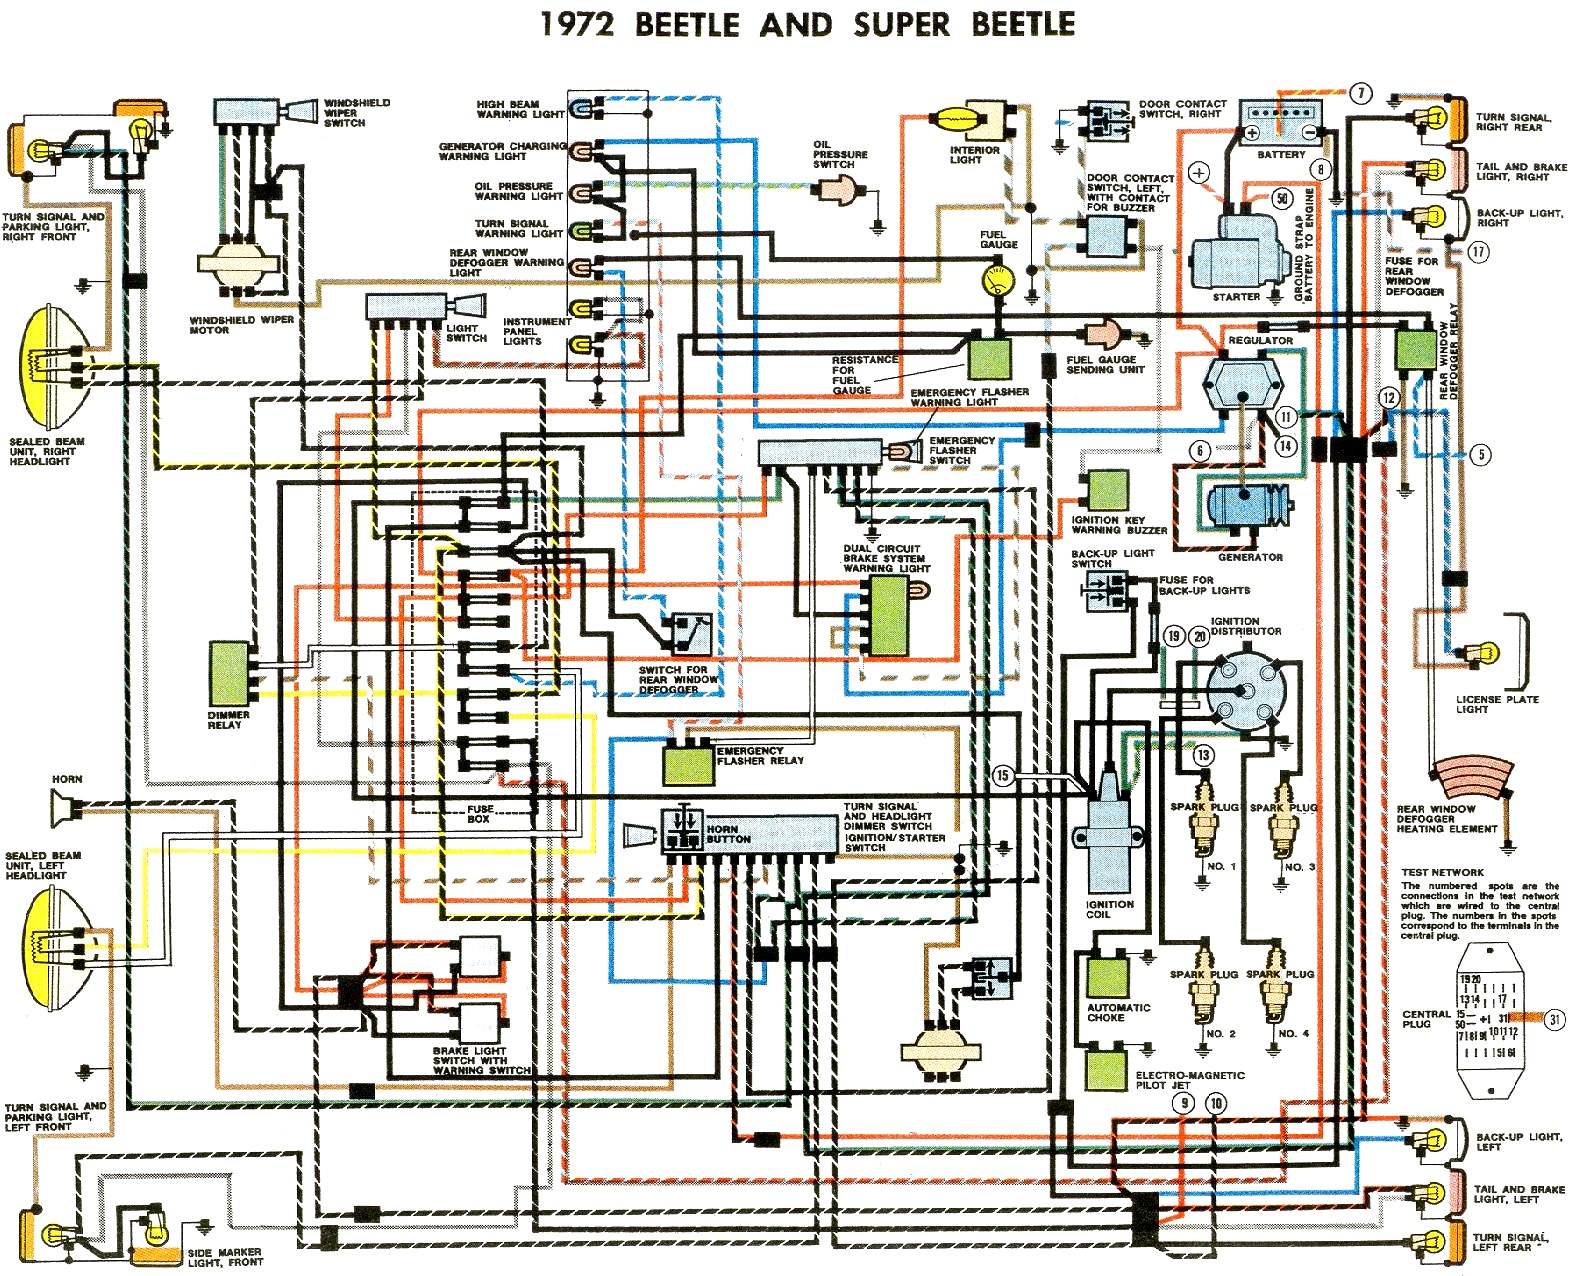 bug_72 1972 beetle wiring diagram thegoldenbug com 73 vw beetle wiring diagram at nearapp.co